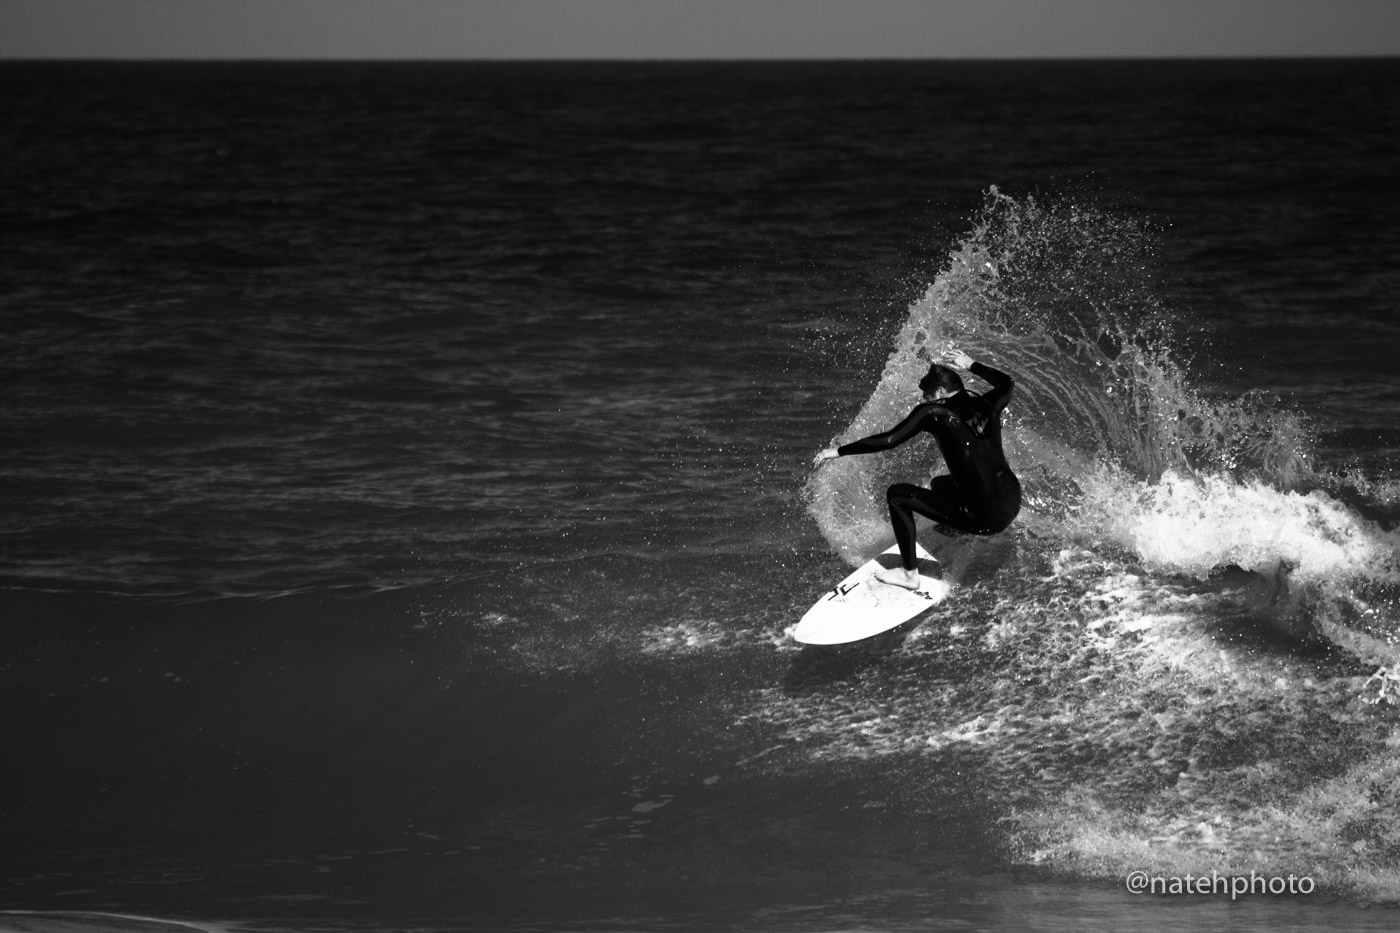 I was shooting with a B&W polarizer, its only fair that I edit one image to be B&W. Nate frontside hack.